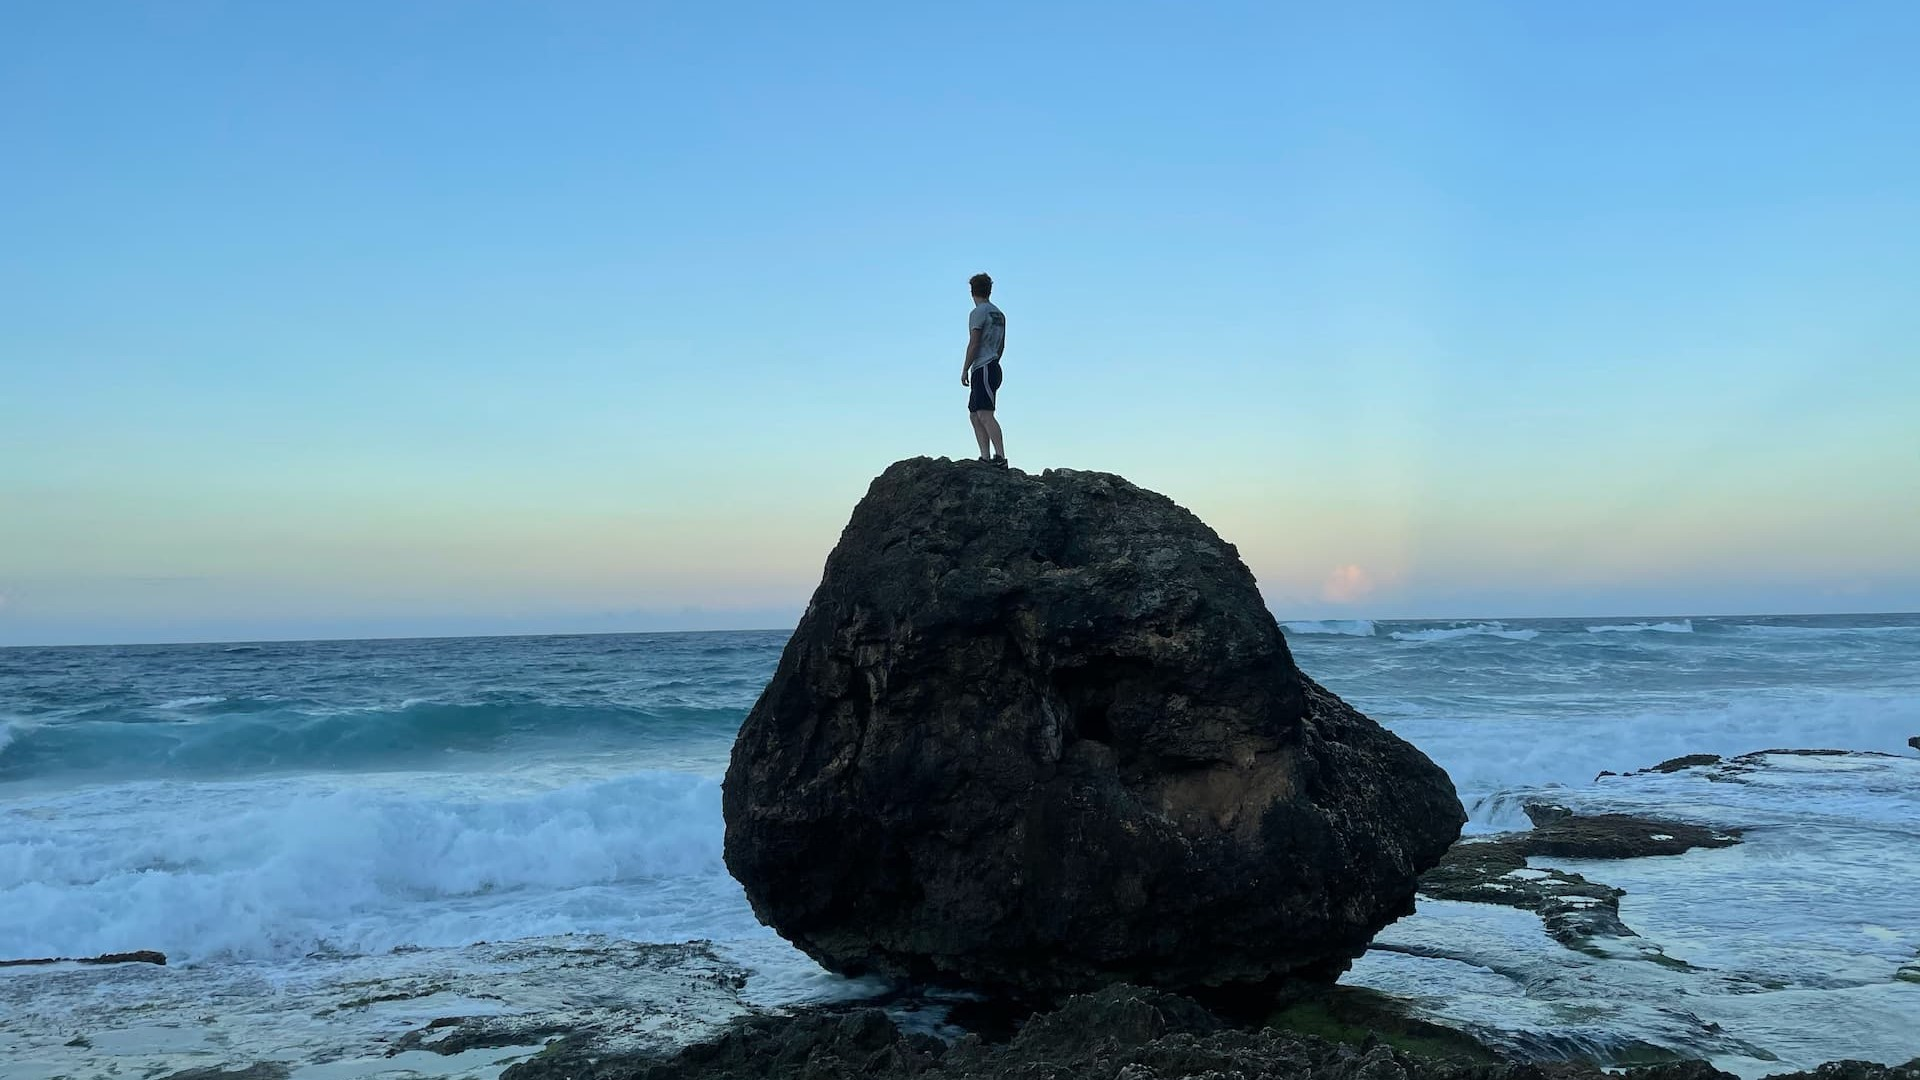 A person standing on top of a rock.